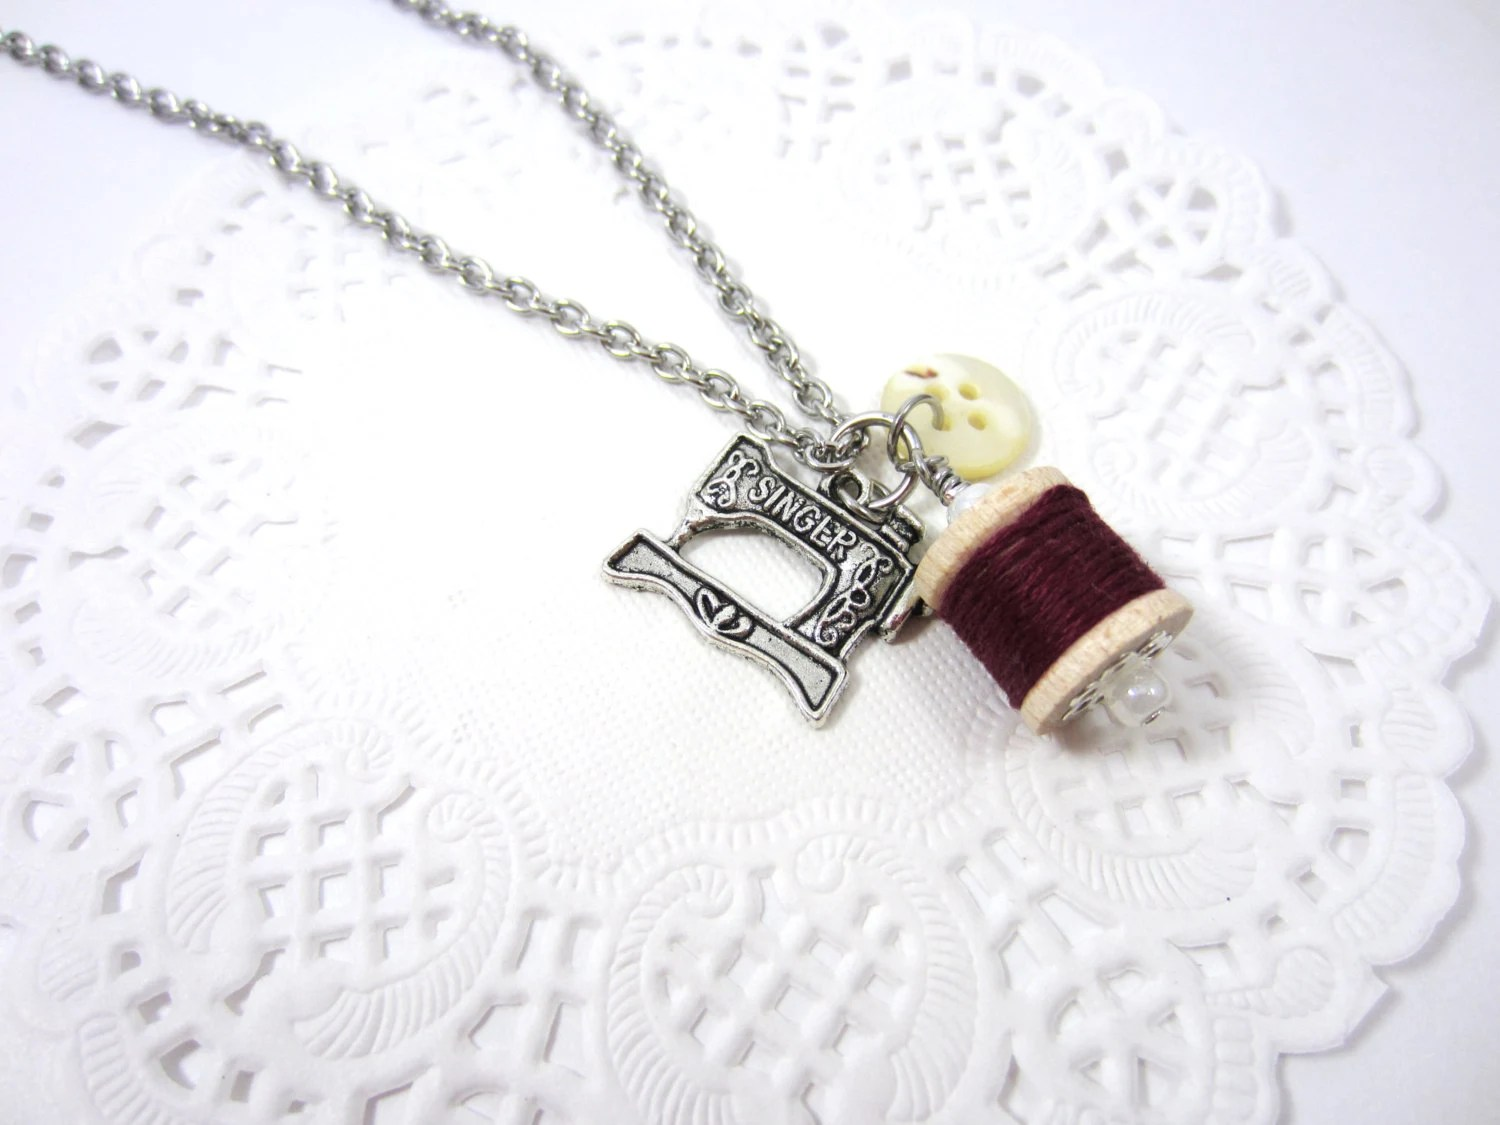 Le collier couture - Charm necklace with wooden spool, mother of pearl button and Singer sewing machine charm - Burgundy - MamzelleBouton